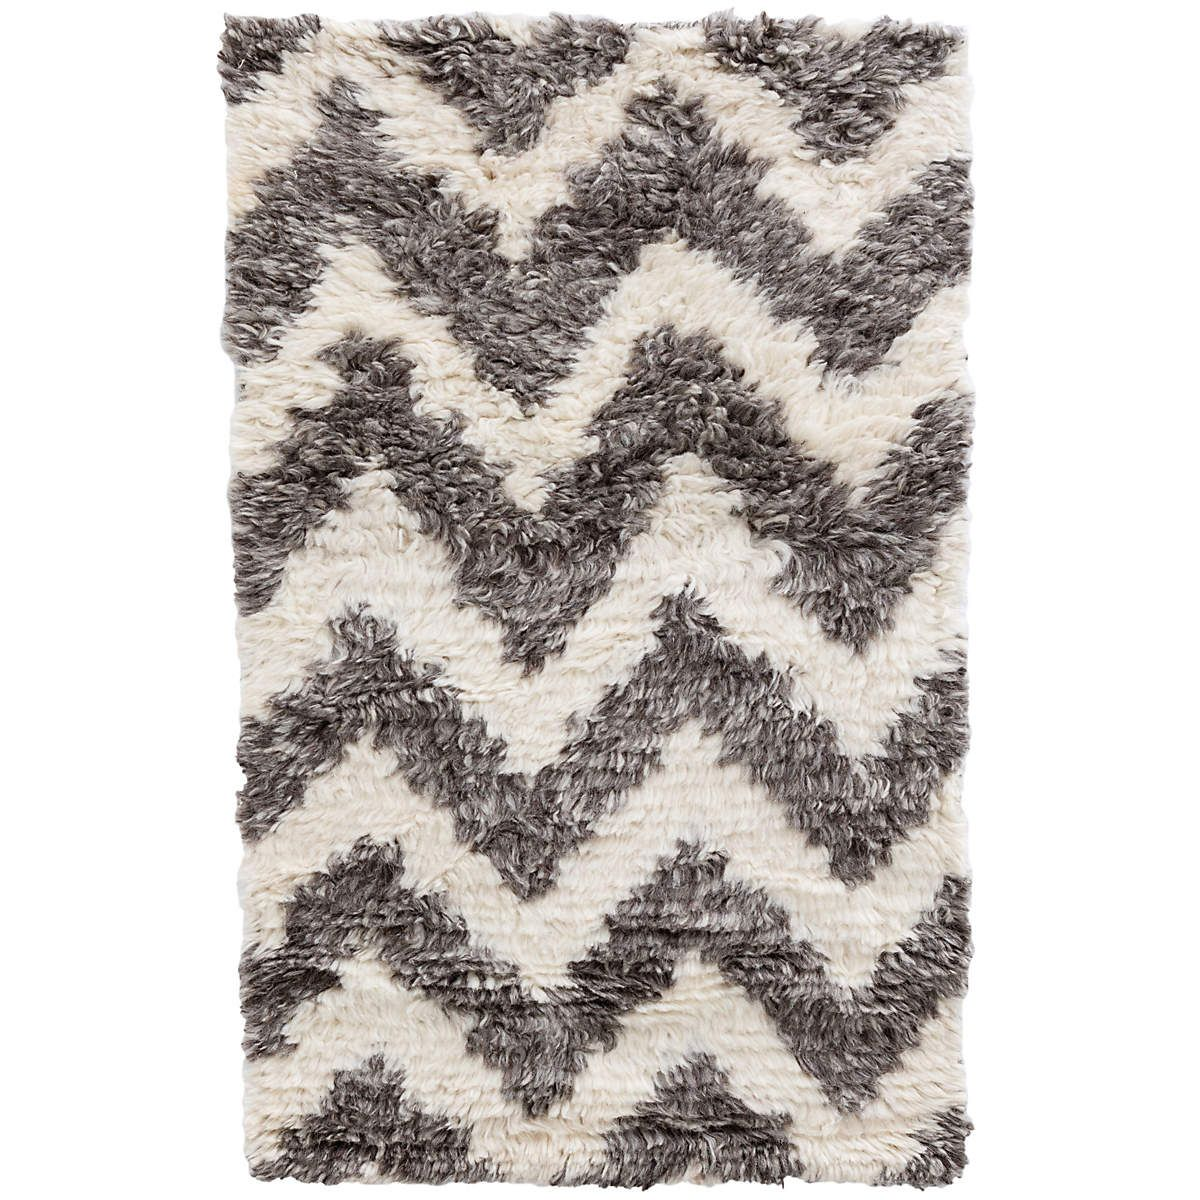 Neutra Grey Woven Wool Rug The Outlet Wool Rug Grey Woven Rug Rug Shopping